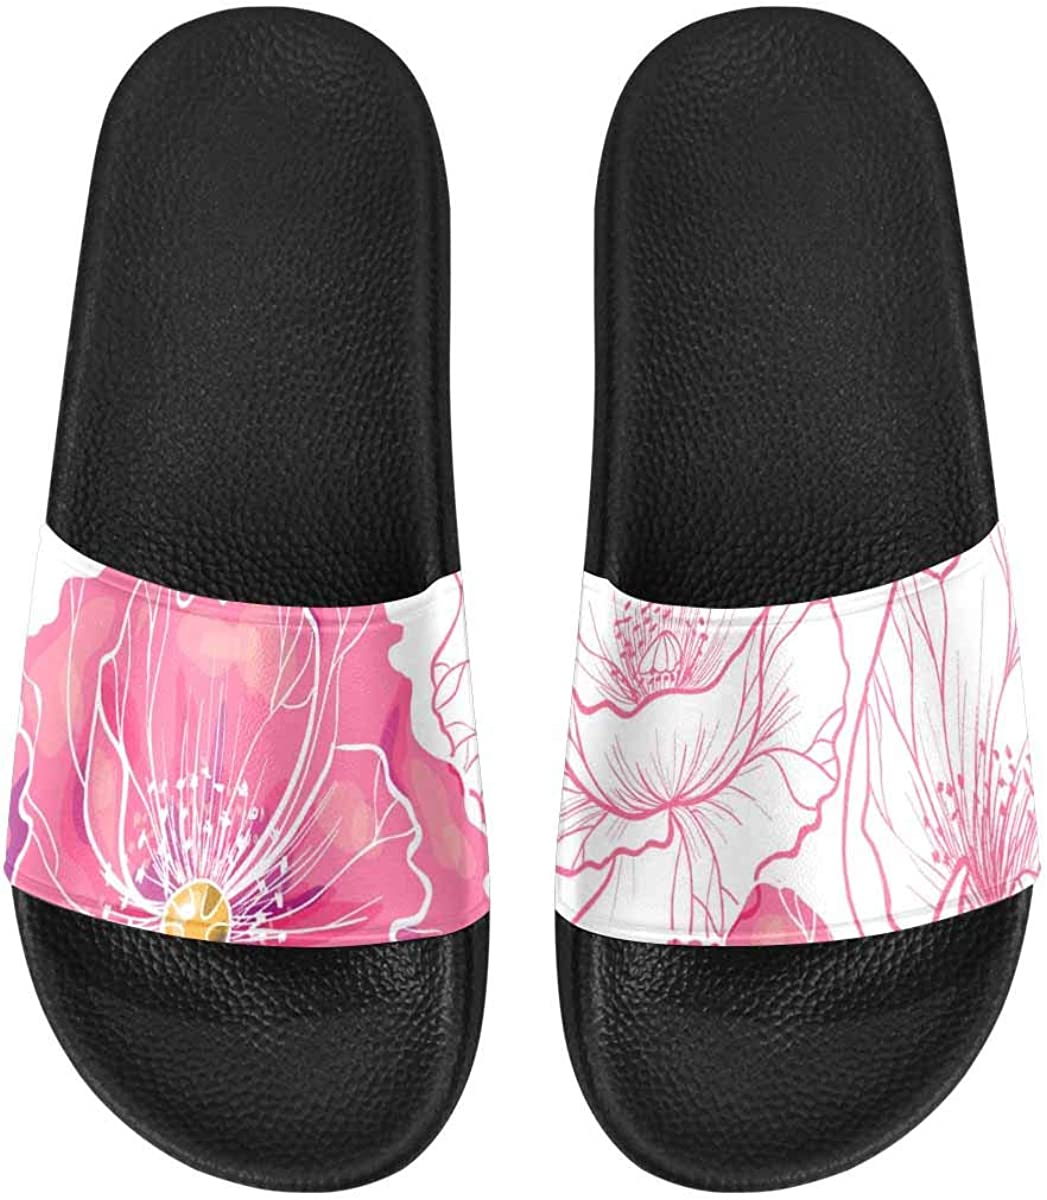 InterestPrint Women's Stylish Slipper Sandals Made from Soft Material Pink Wildflowers Daisies Tulips